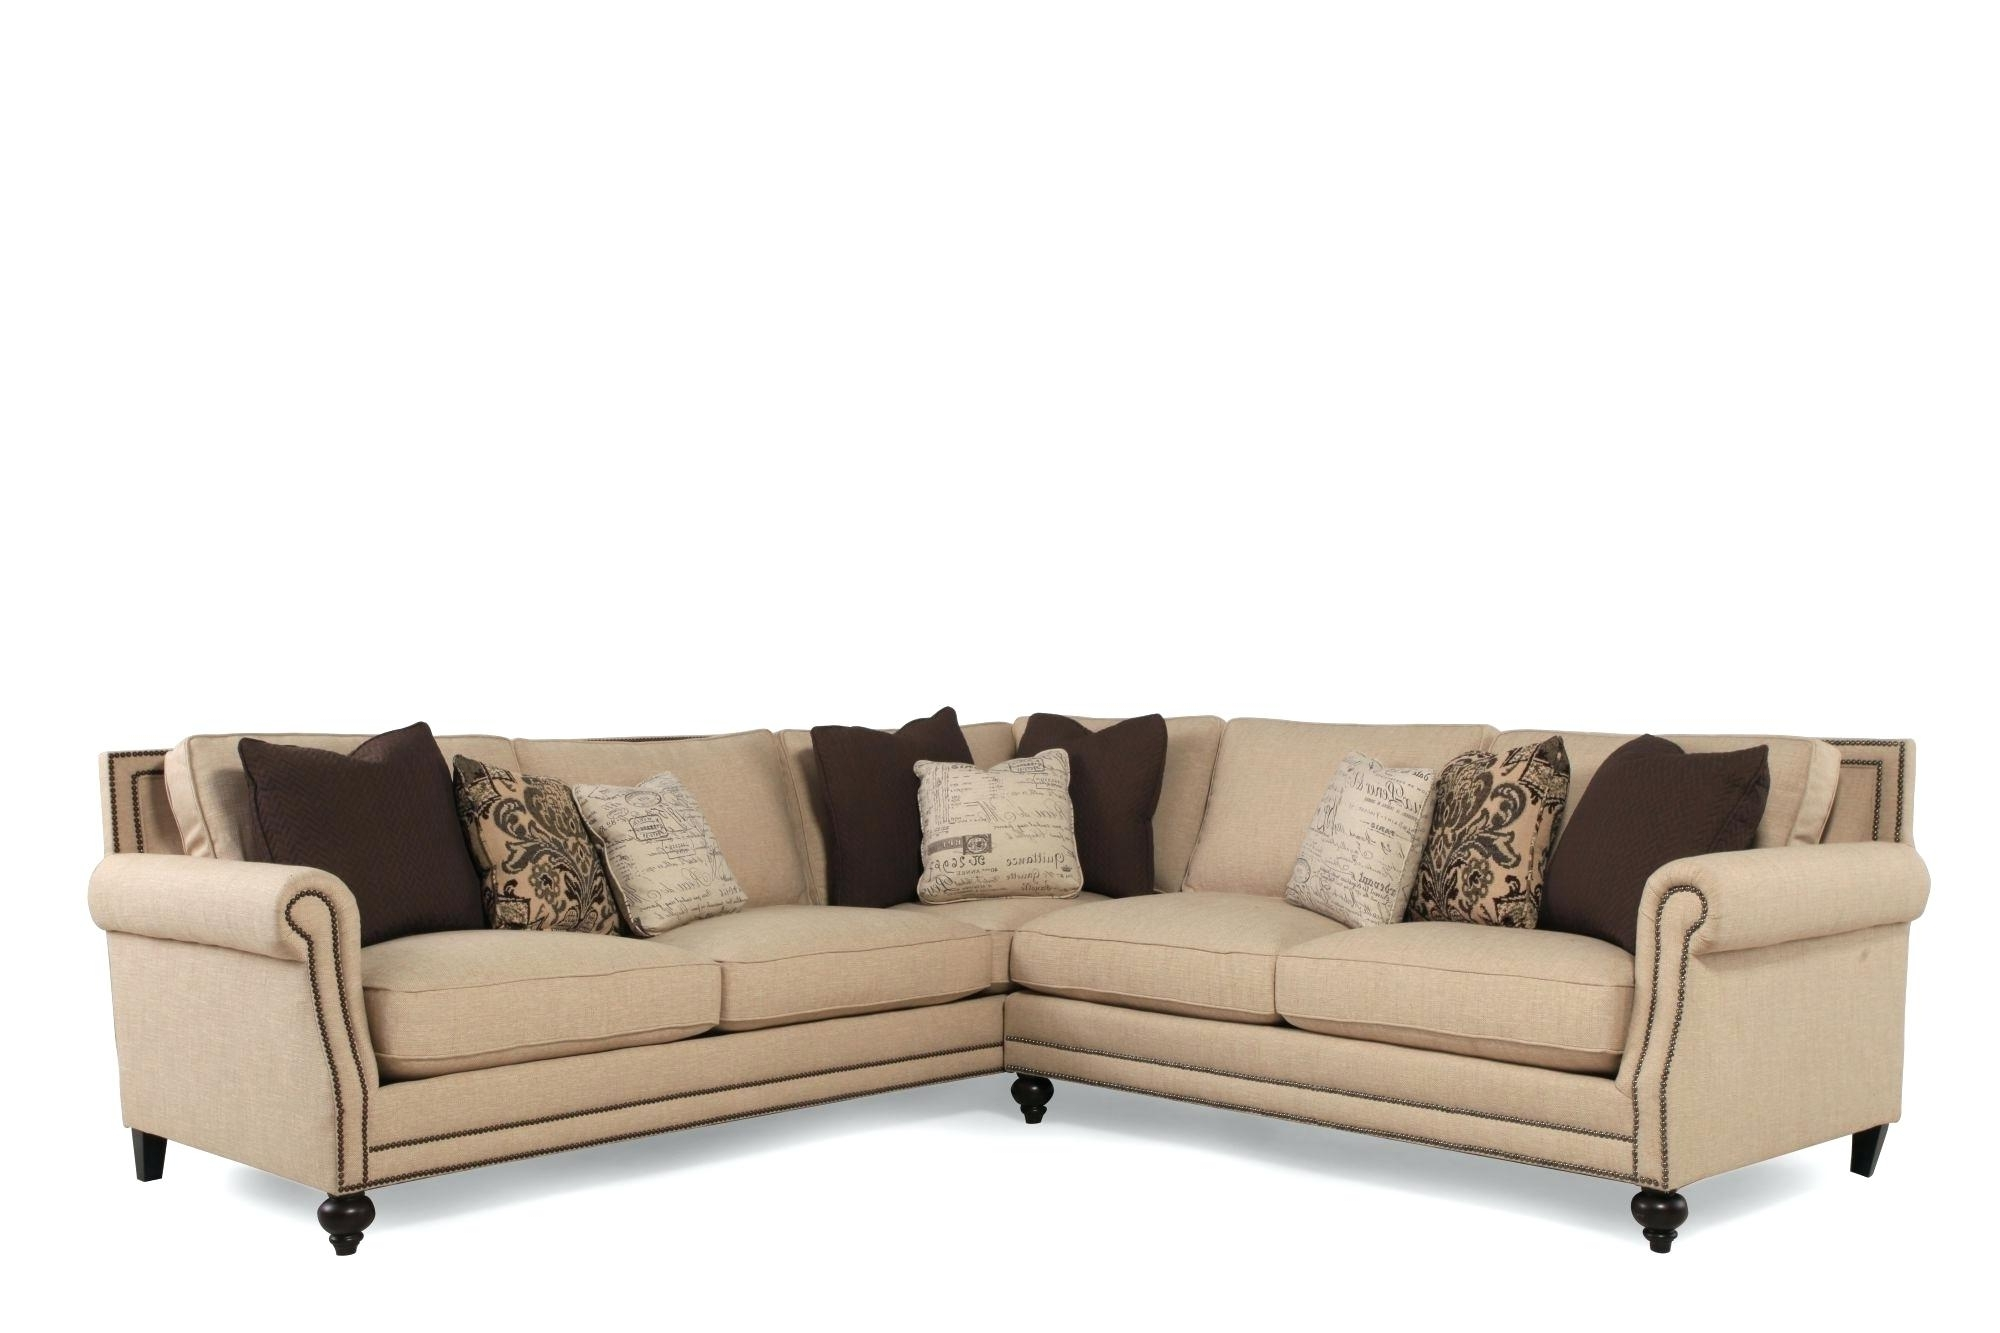 Okc Sectional Sofas Within Most Recent Sectional Sofas Okc S Cheap For Sale In Oklahoma City (View 13 of 20)